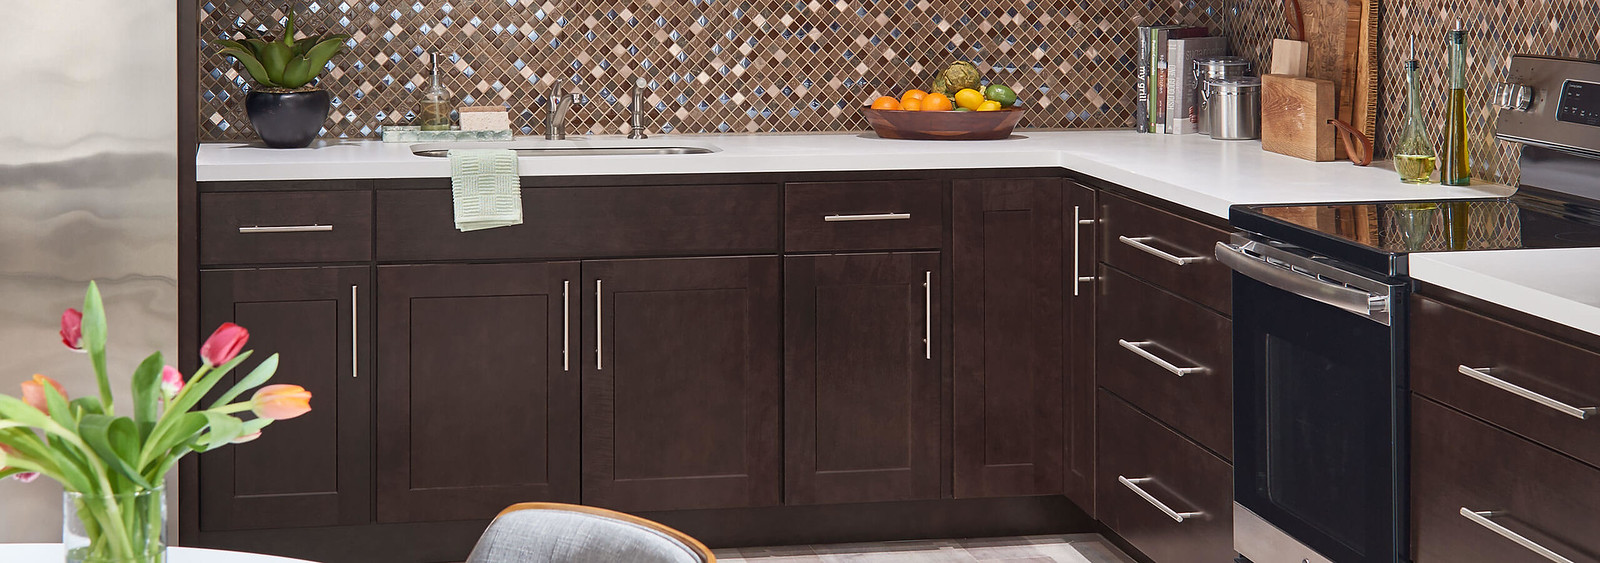 Wolf Classic Cabinets in Dark Sable